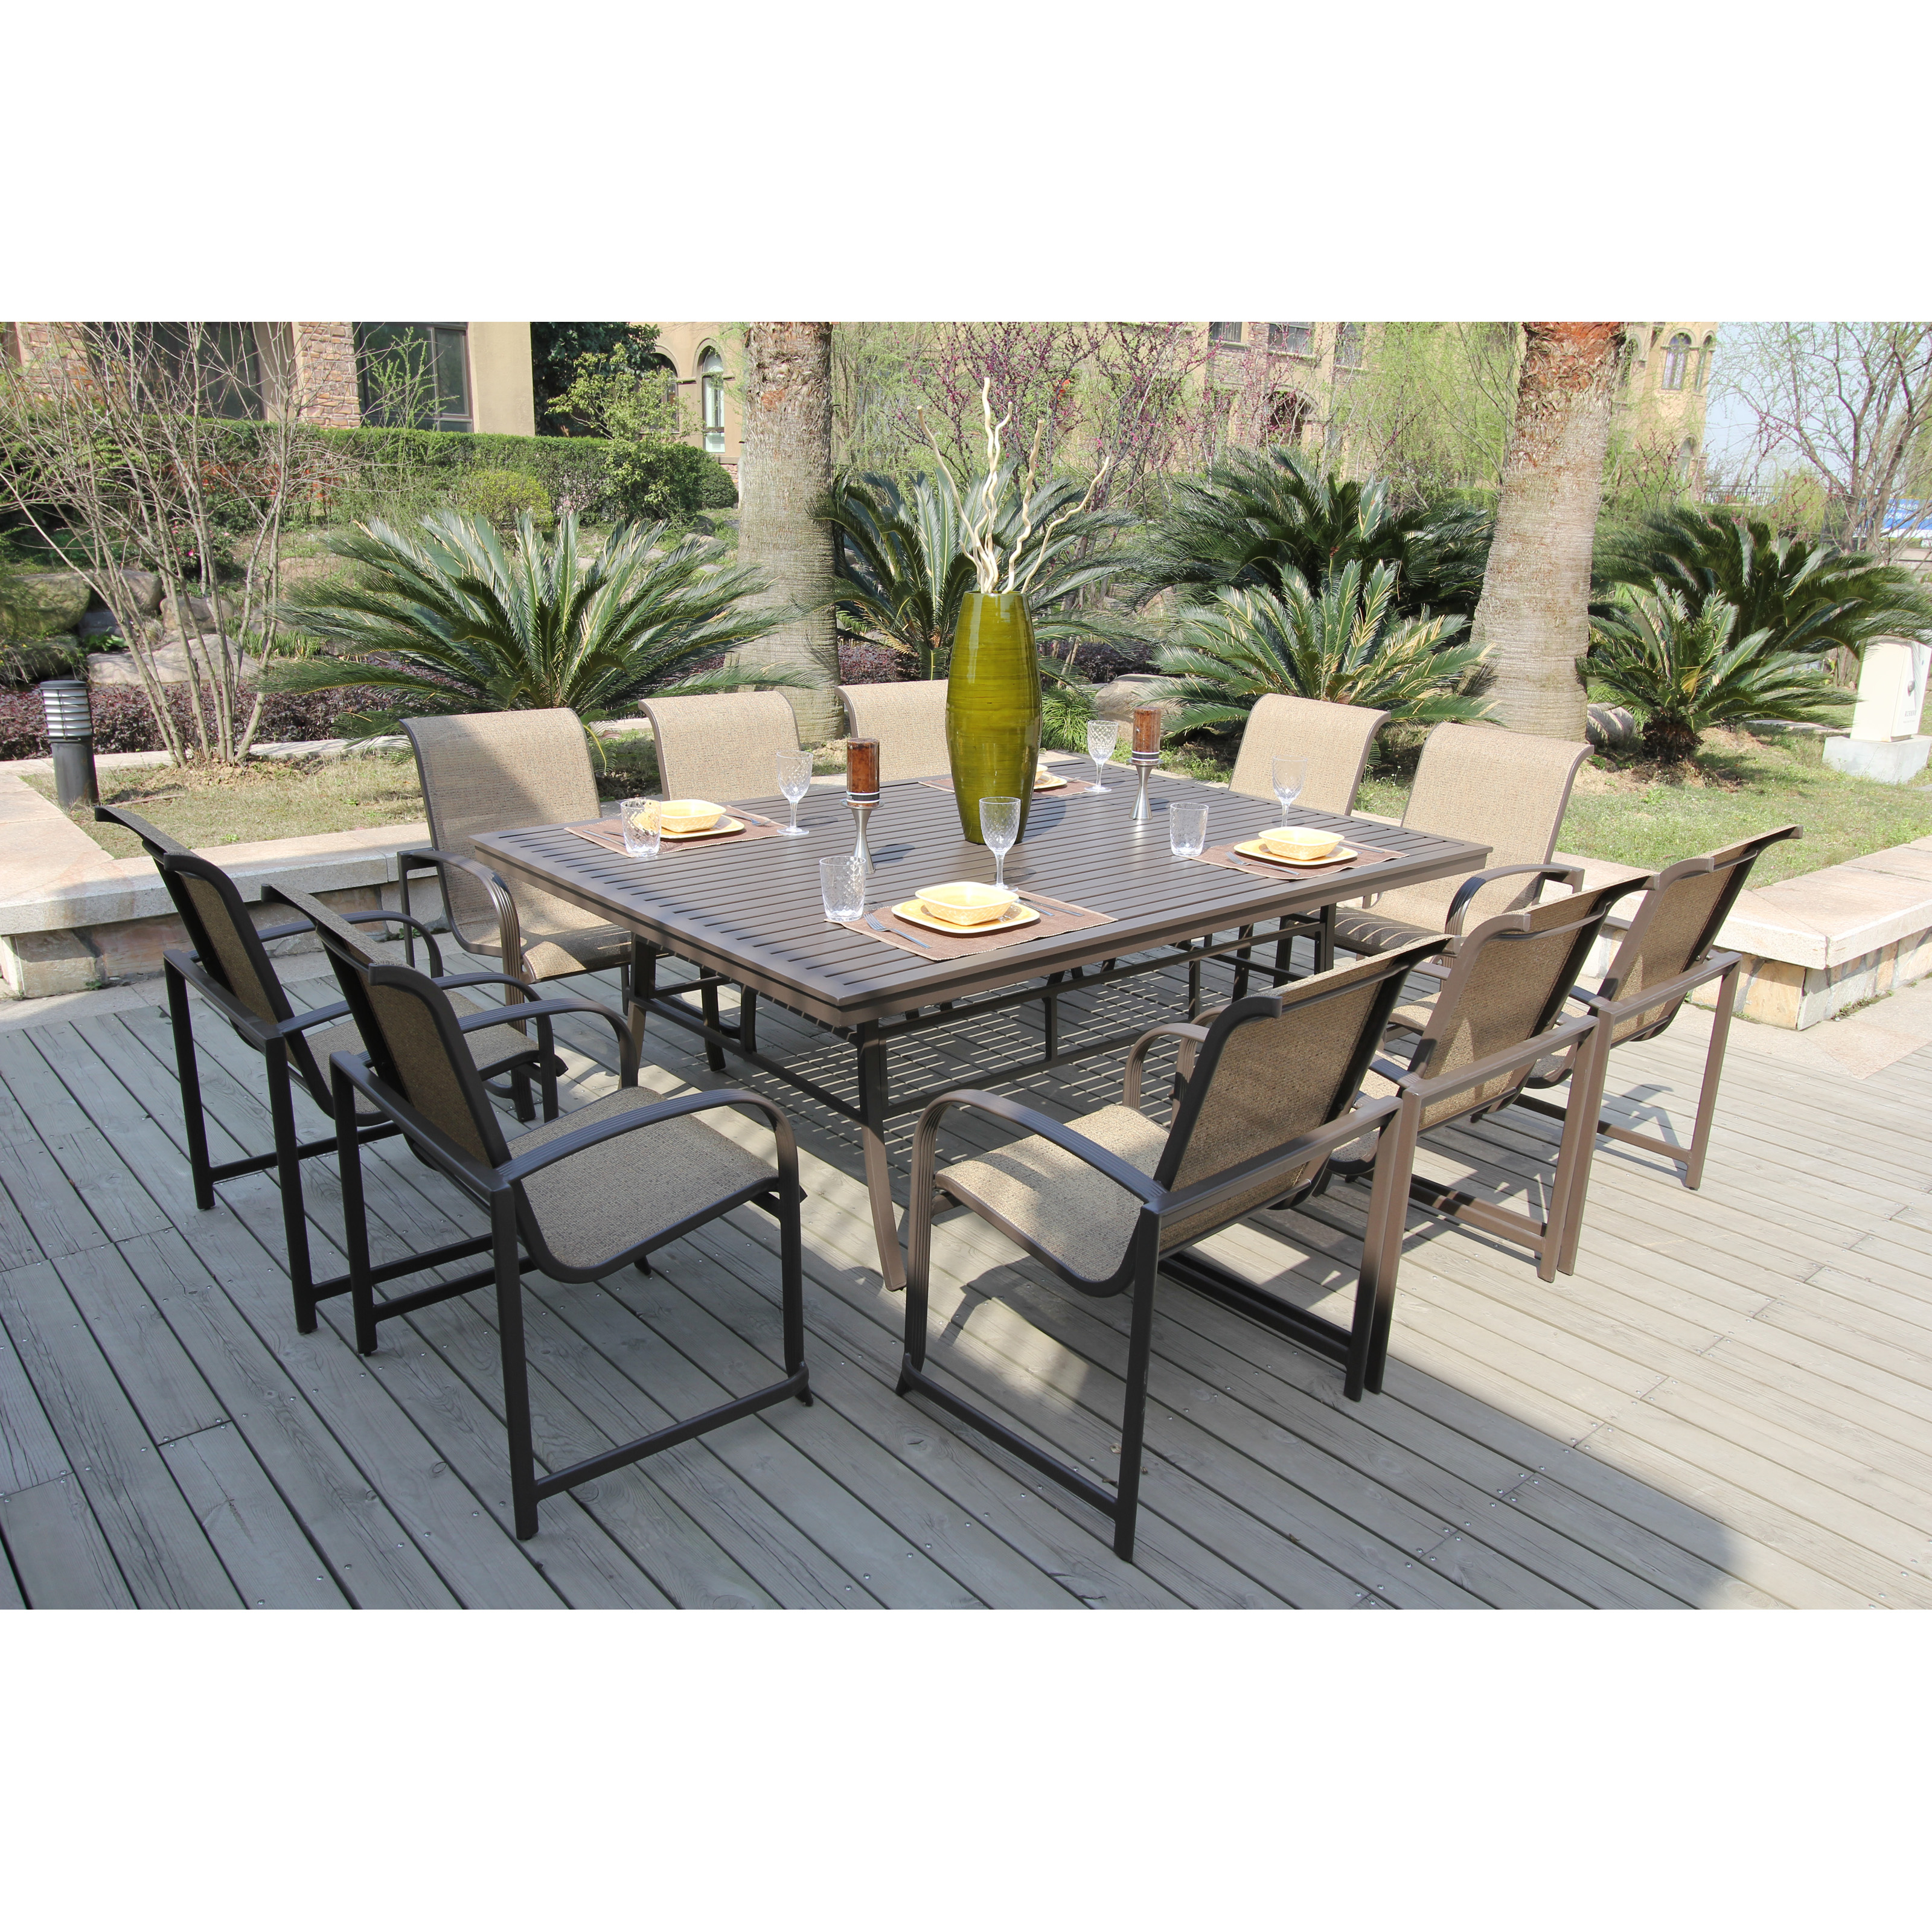 22 simple patio dining sets seats 10 for Outdoor dining sets for 10